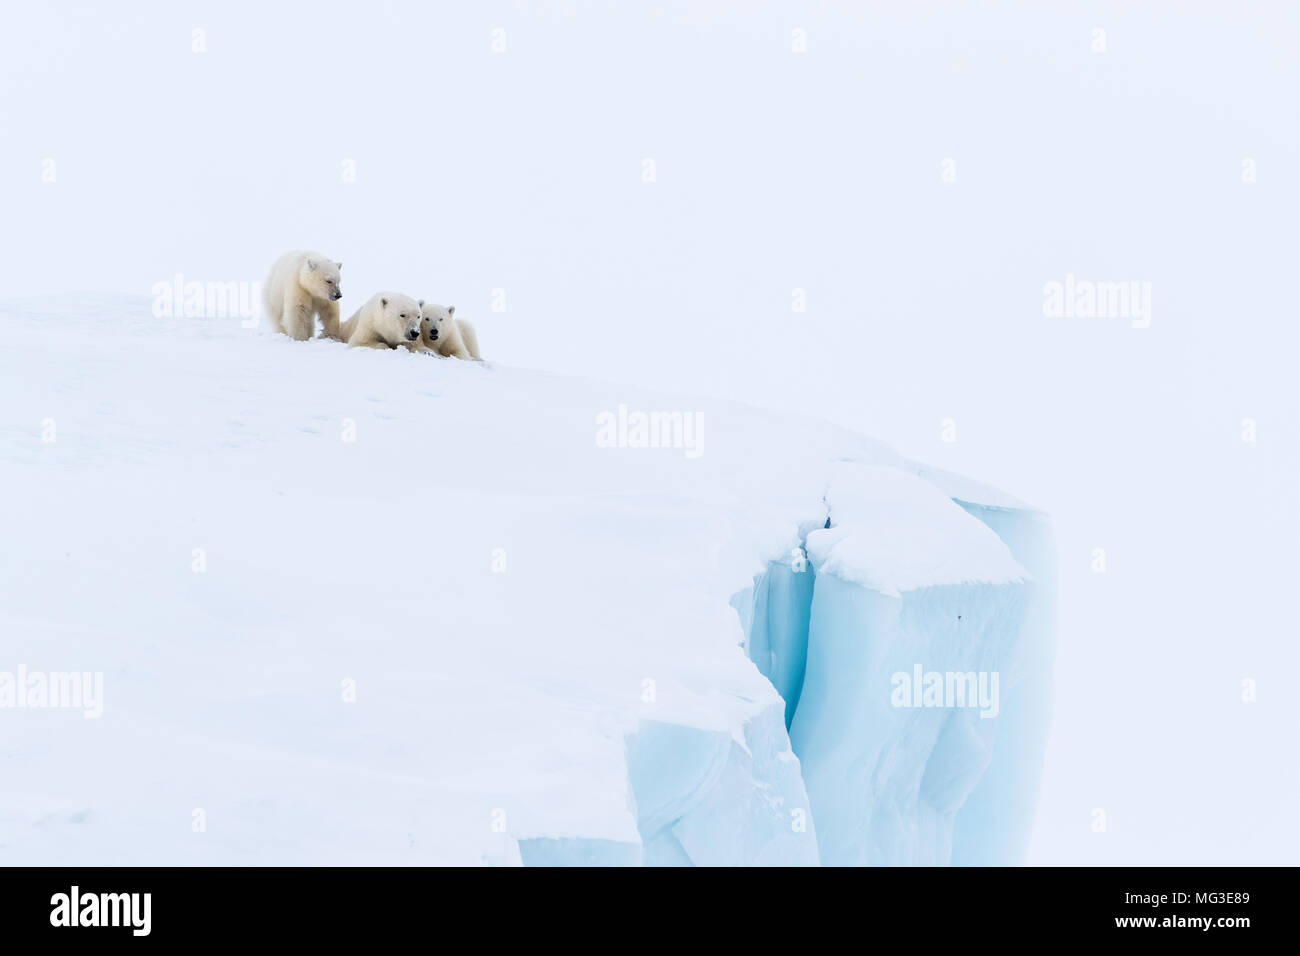 Mother polar bear and 2 yearling cubs sleeping on an iceberg, Baffin Island, Canada, nunavut, arctic - Stock Image